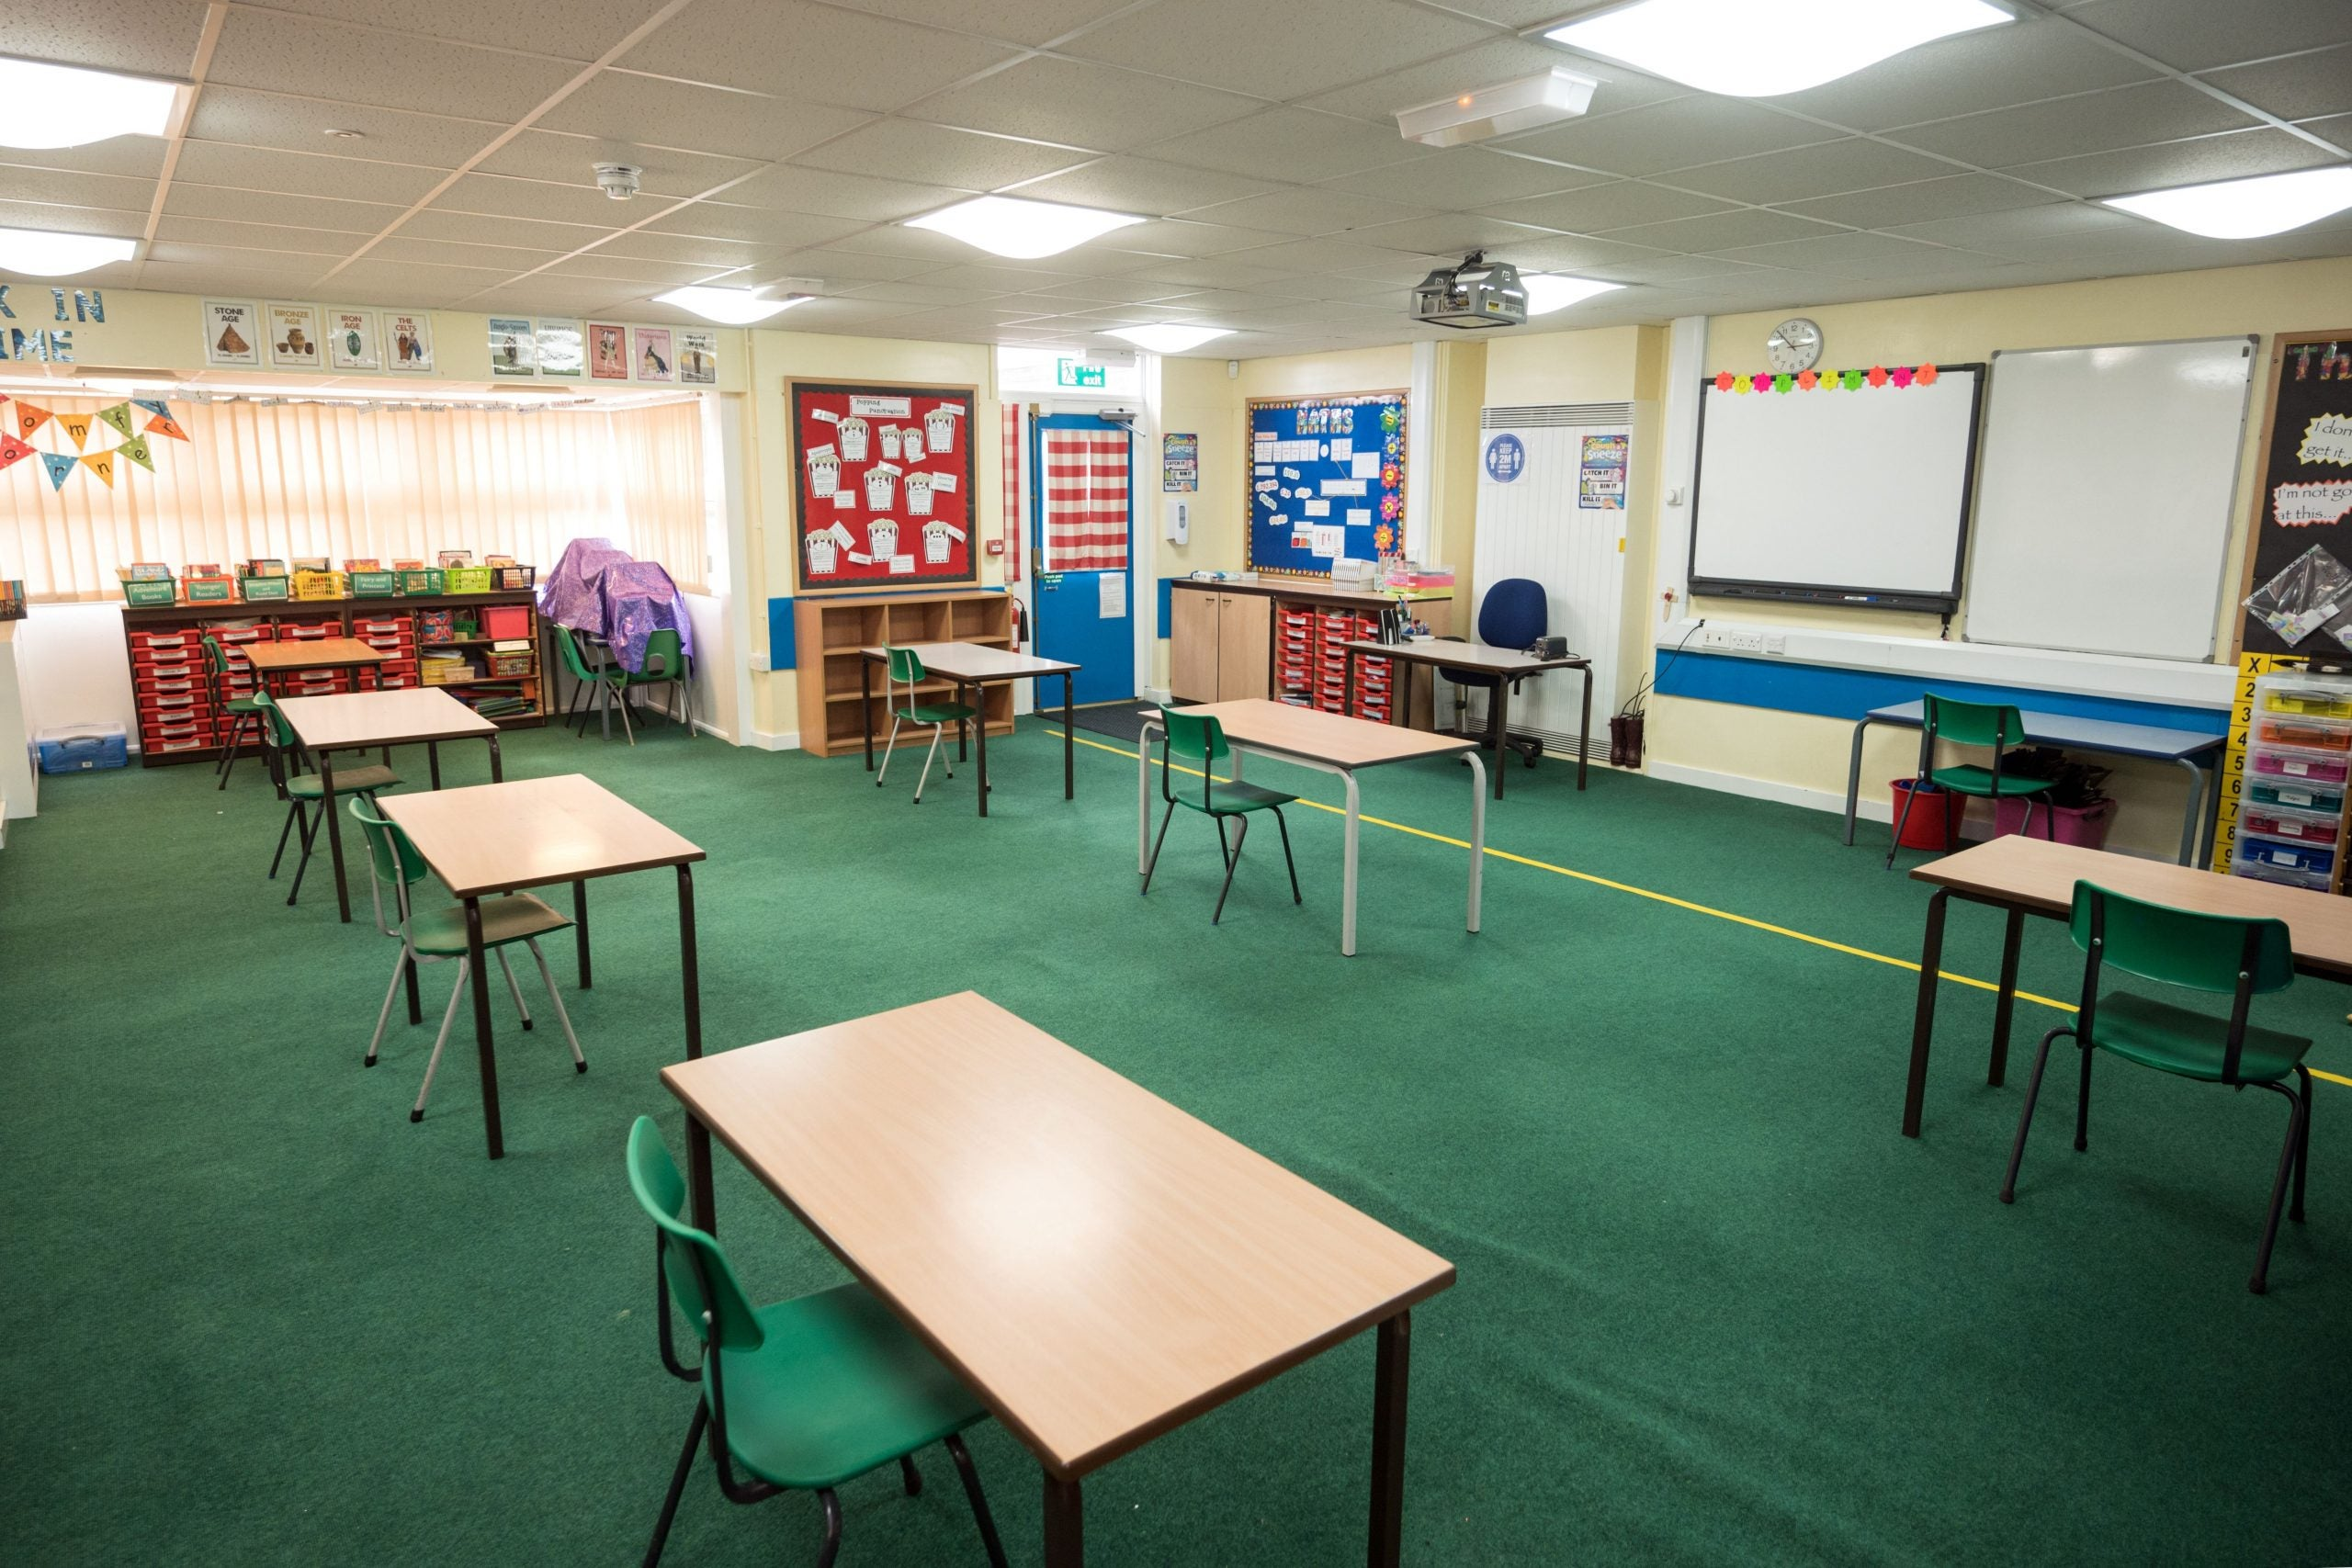 Failing to reopen schools is the most catastrophic decision the government has made so far